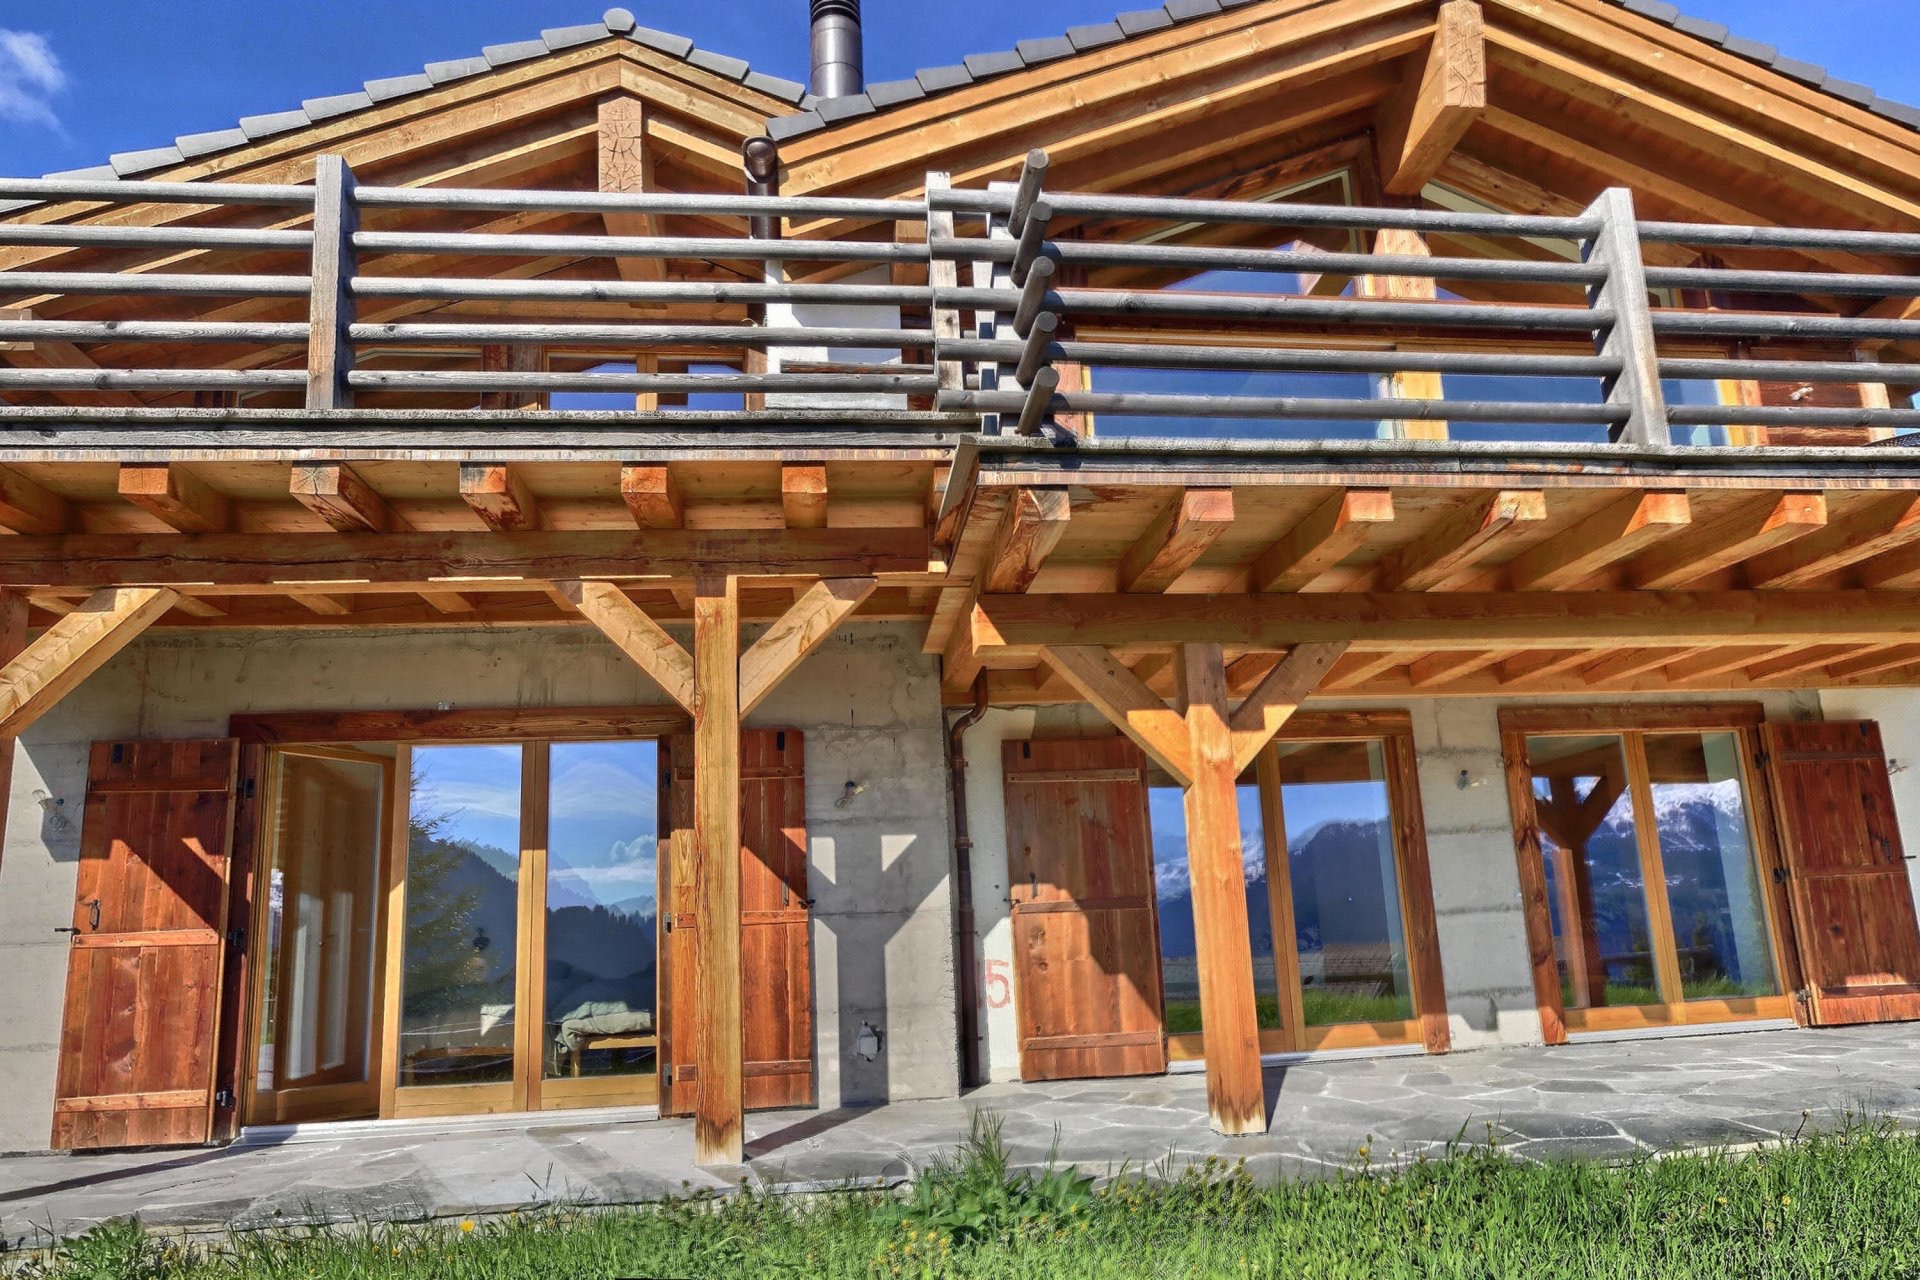 Stunning Swiss chalet with panoramic views of the Alps